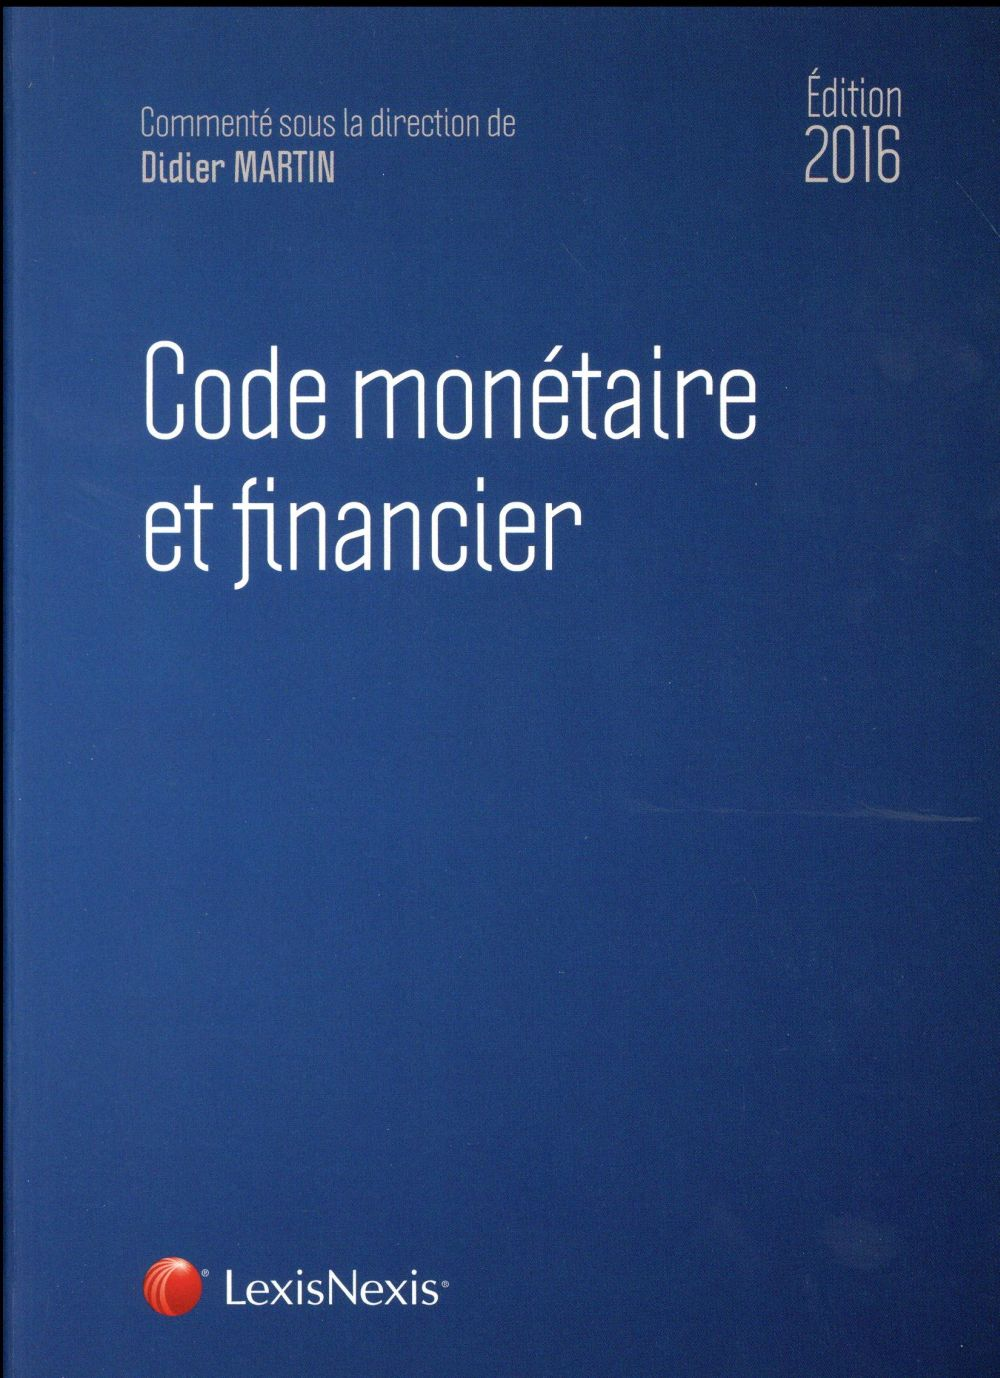 CODE MONETAIRE ET FINANCIER 2016